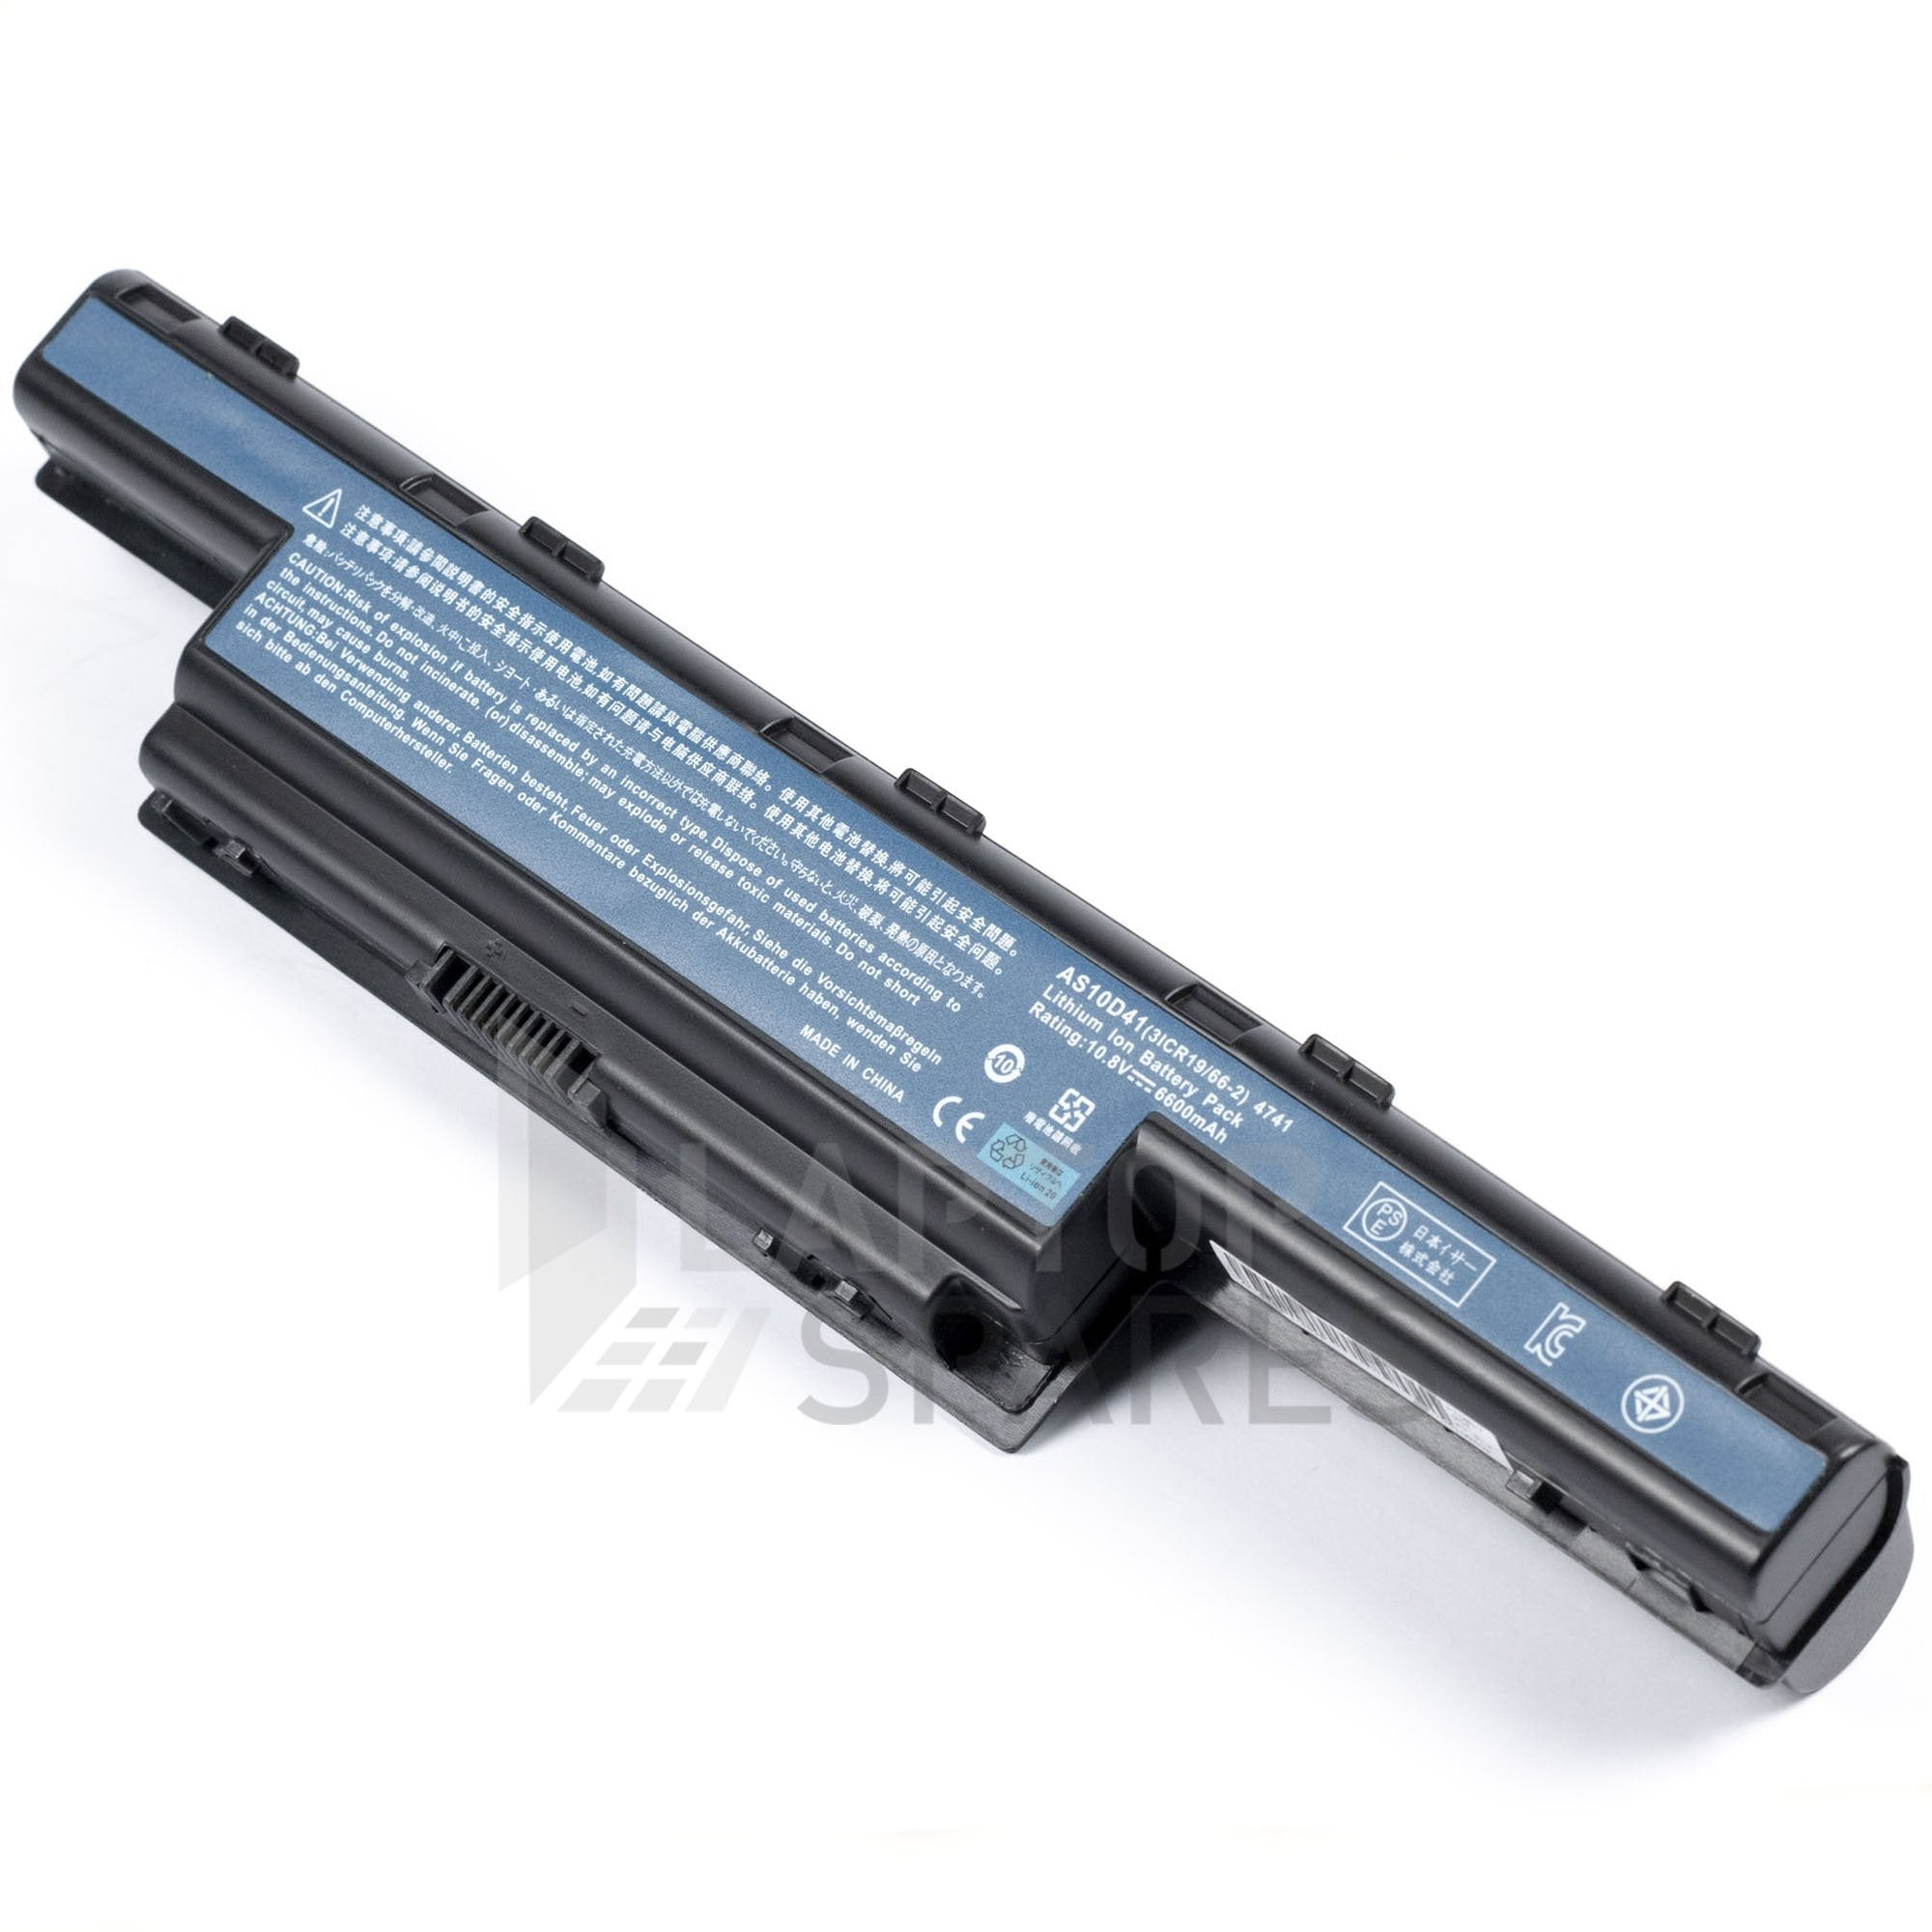 Acer eMachine E640 E640G E642 6600mAh 9 Cell Battery